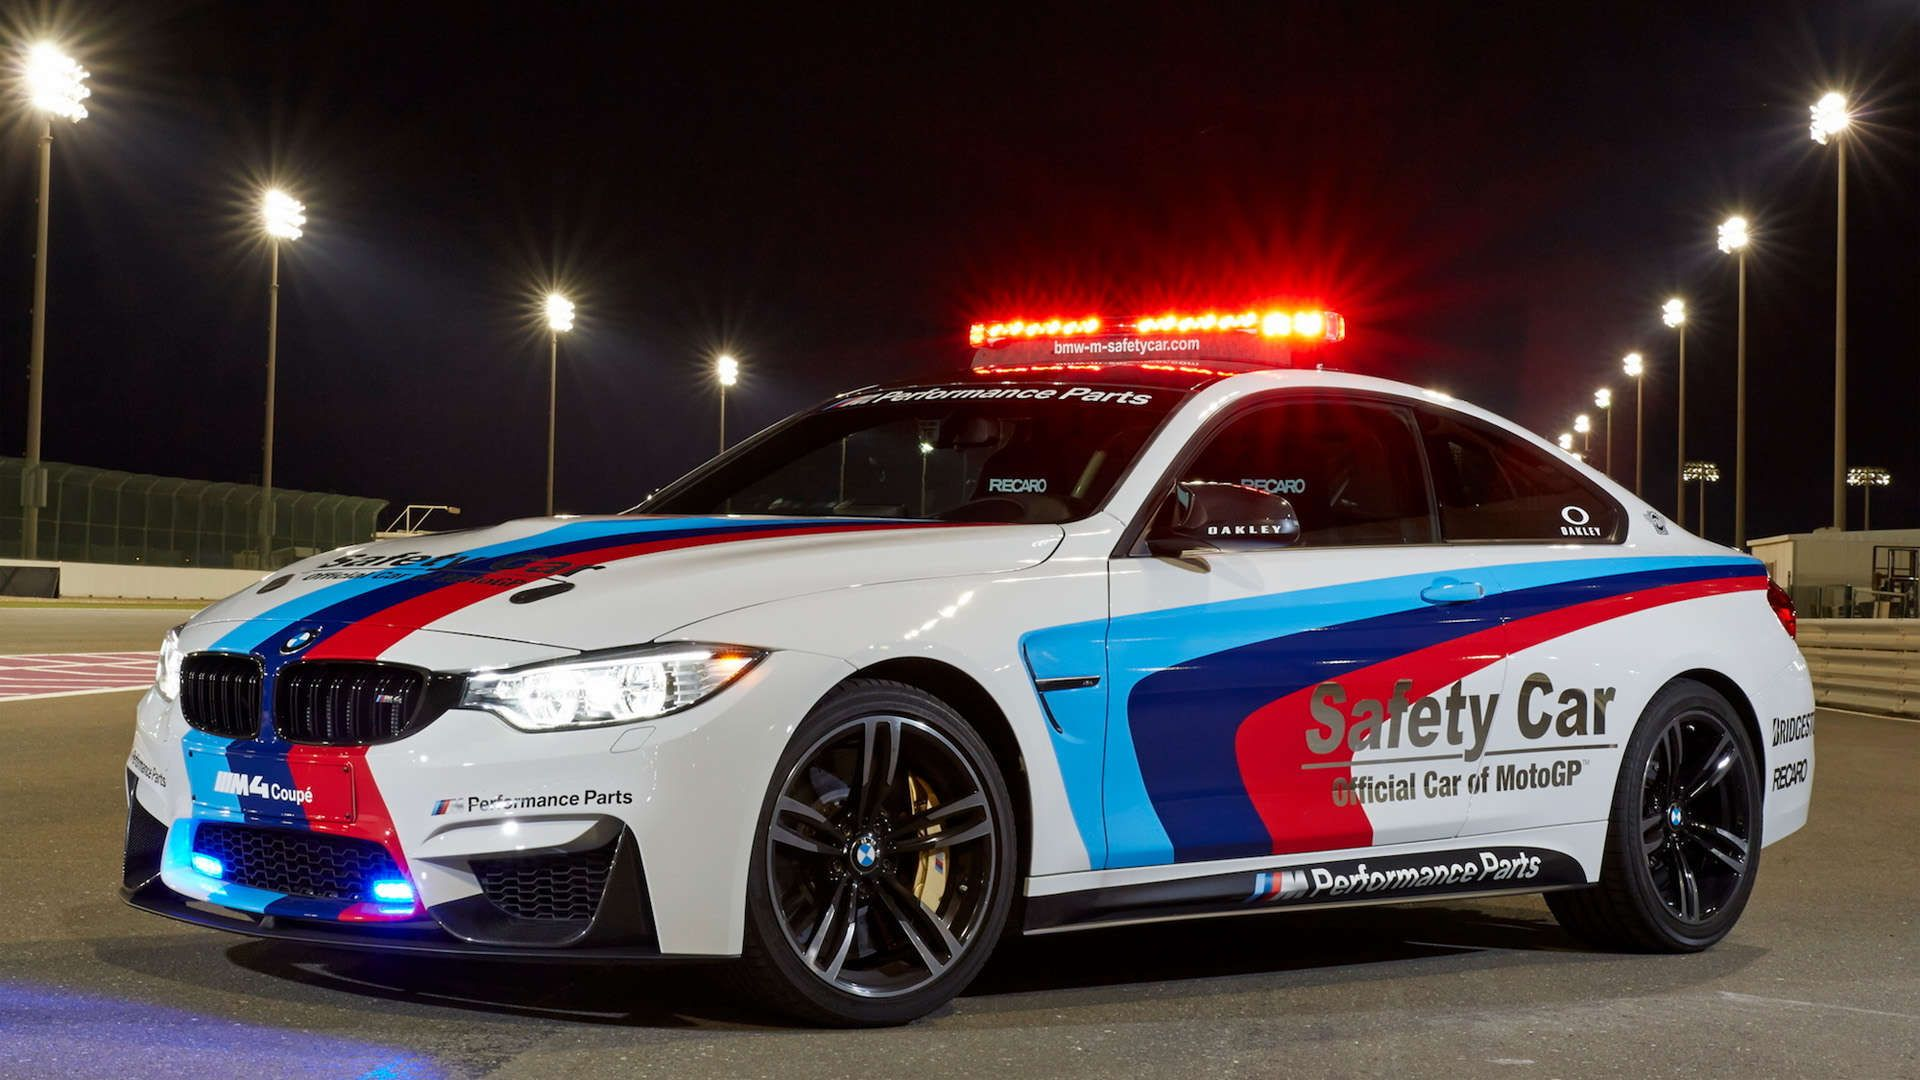 Bmw 5 series touring police 2013 uk wallpapers and hd images car - 2014 Motogp Wallpaper